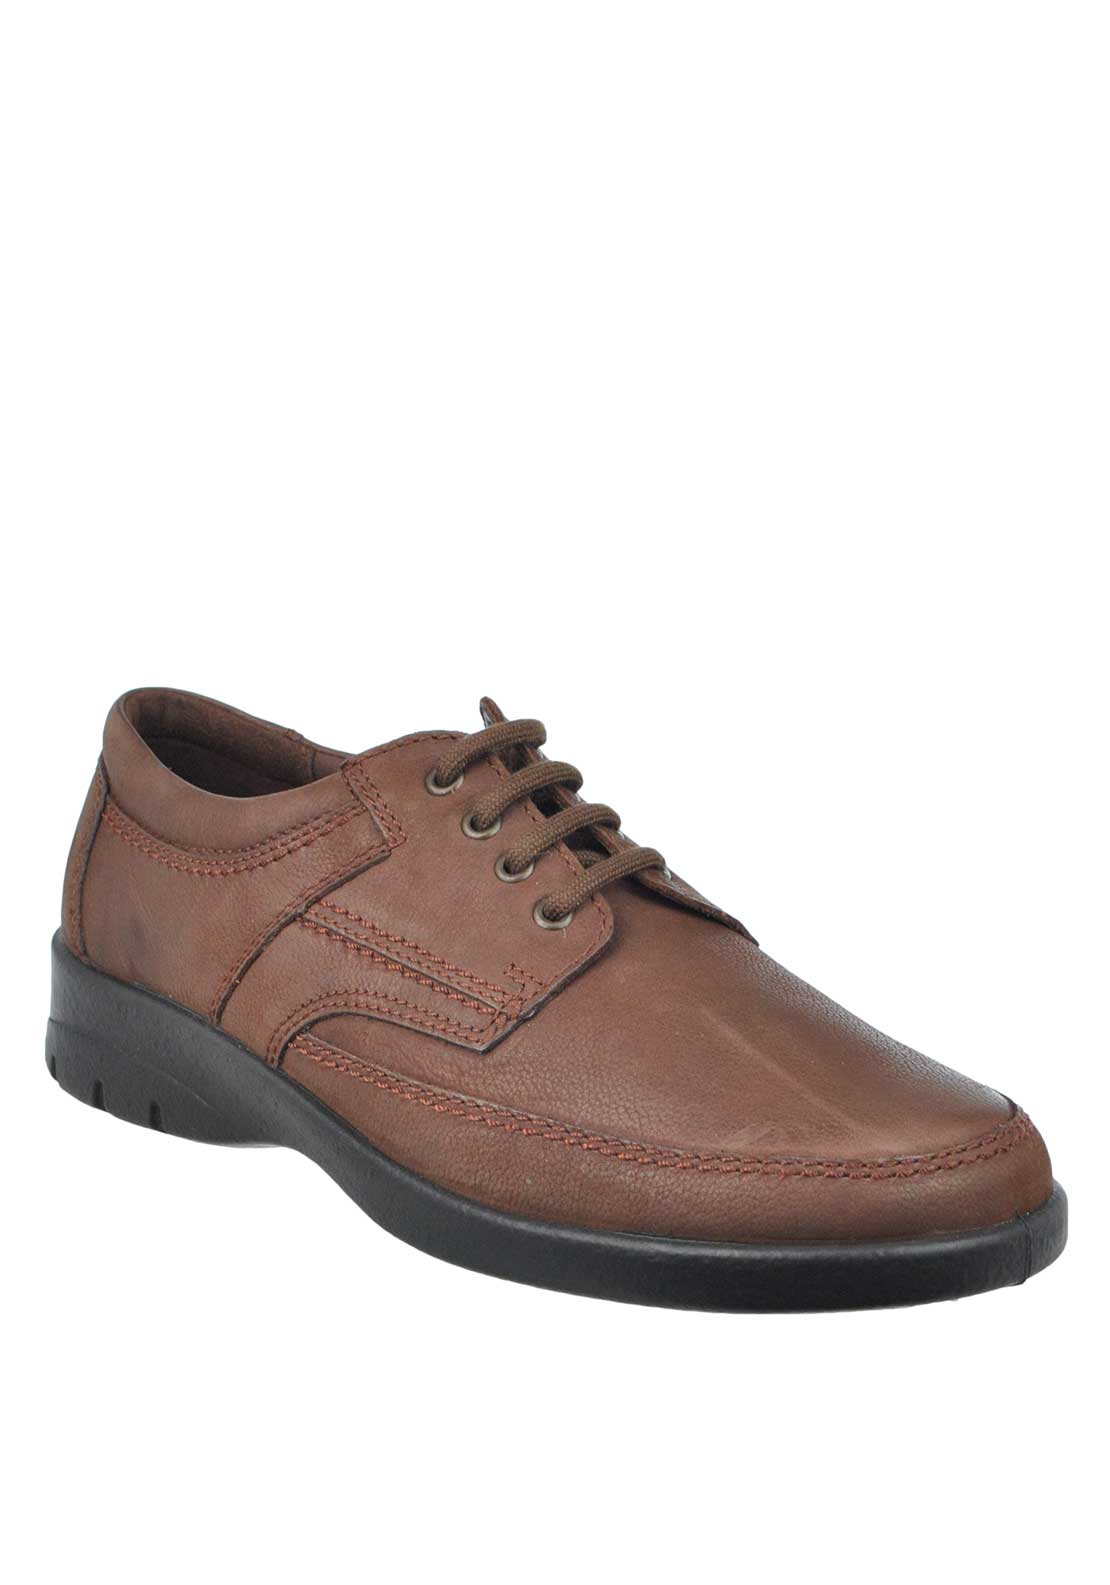 Padders George Lace Up Leather Shoe, Brown